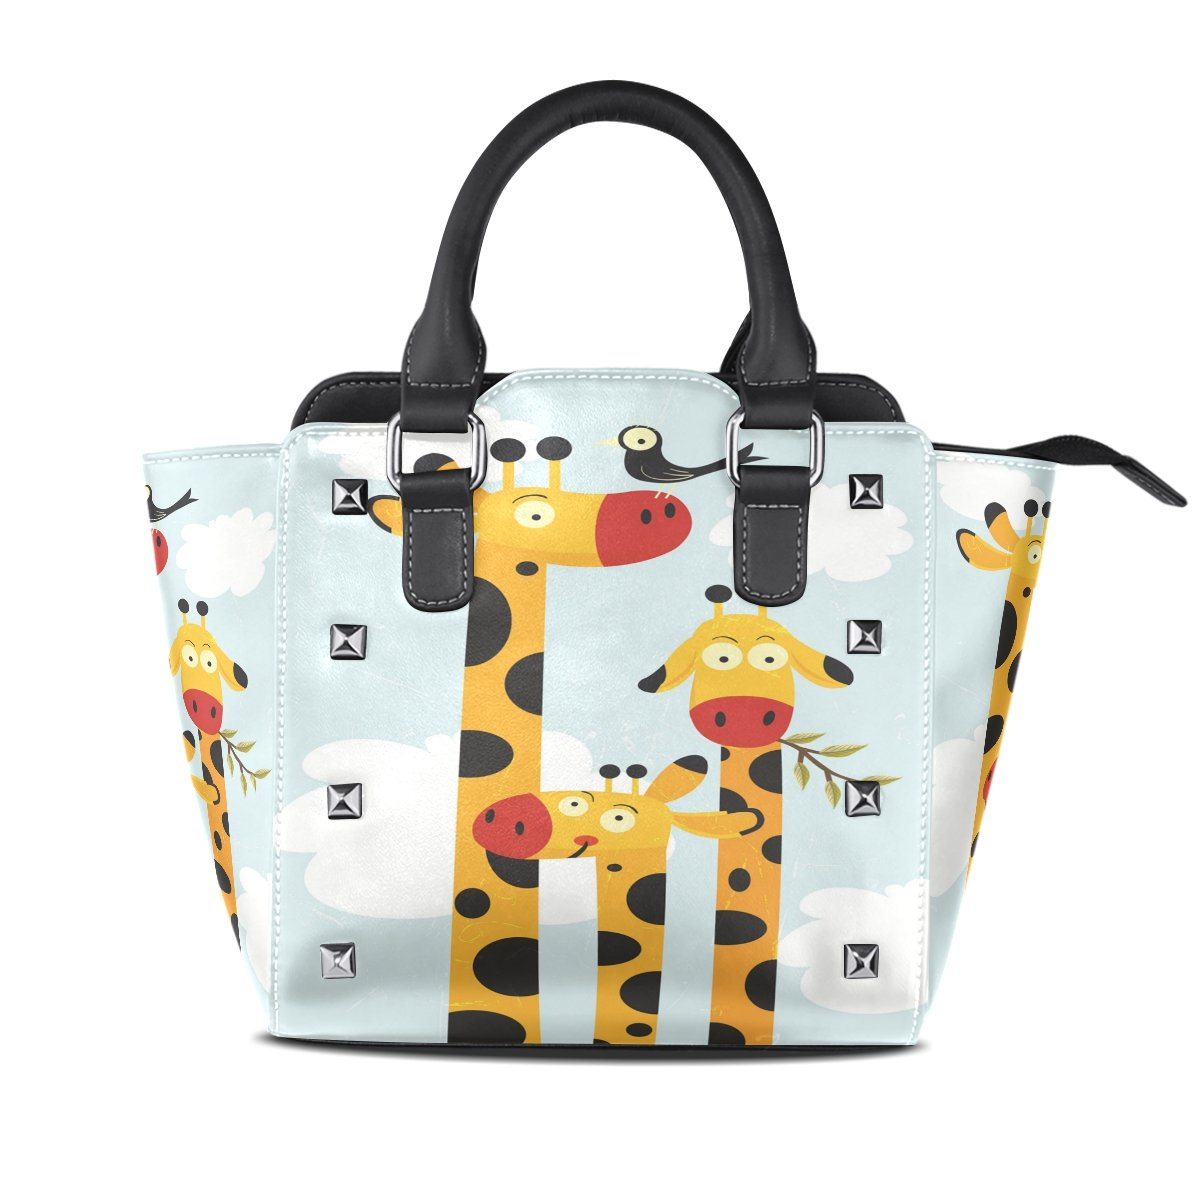 Womens Genuine Leather Hangbags Tote Bags Family Giraffes Purse Shoulder Bags